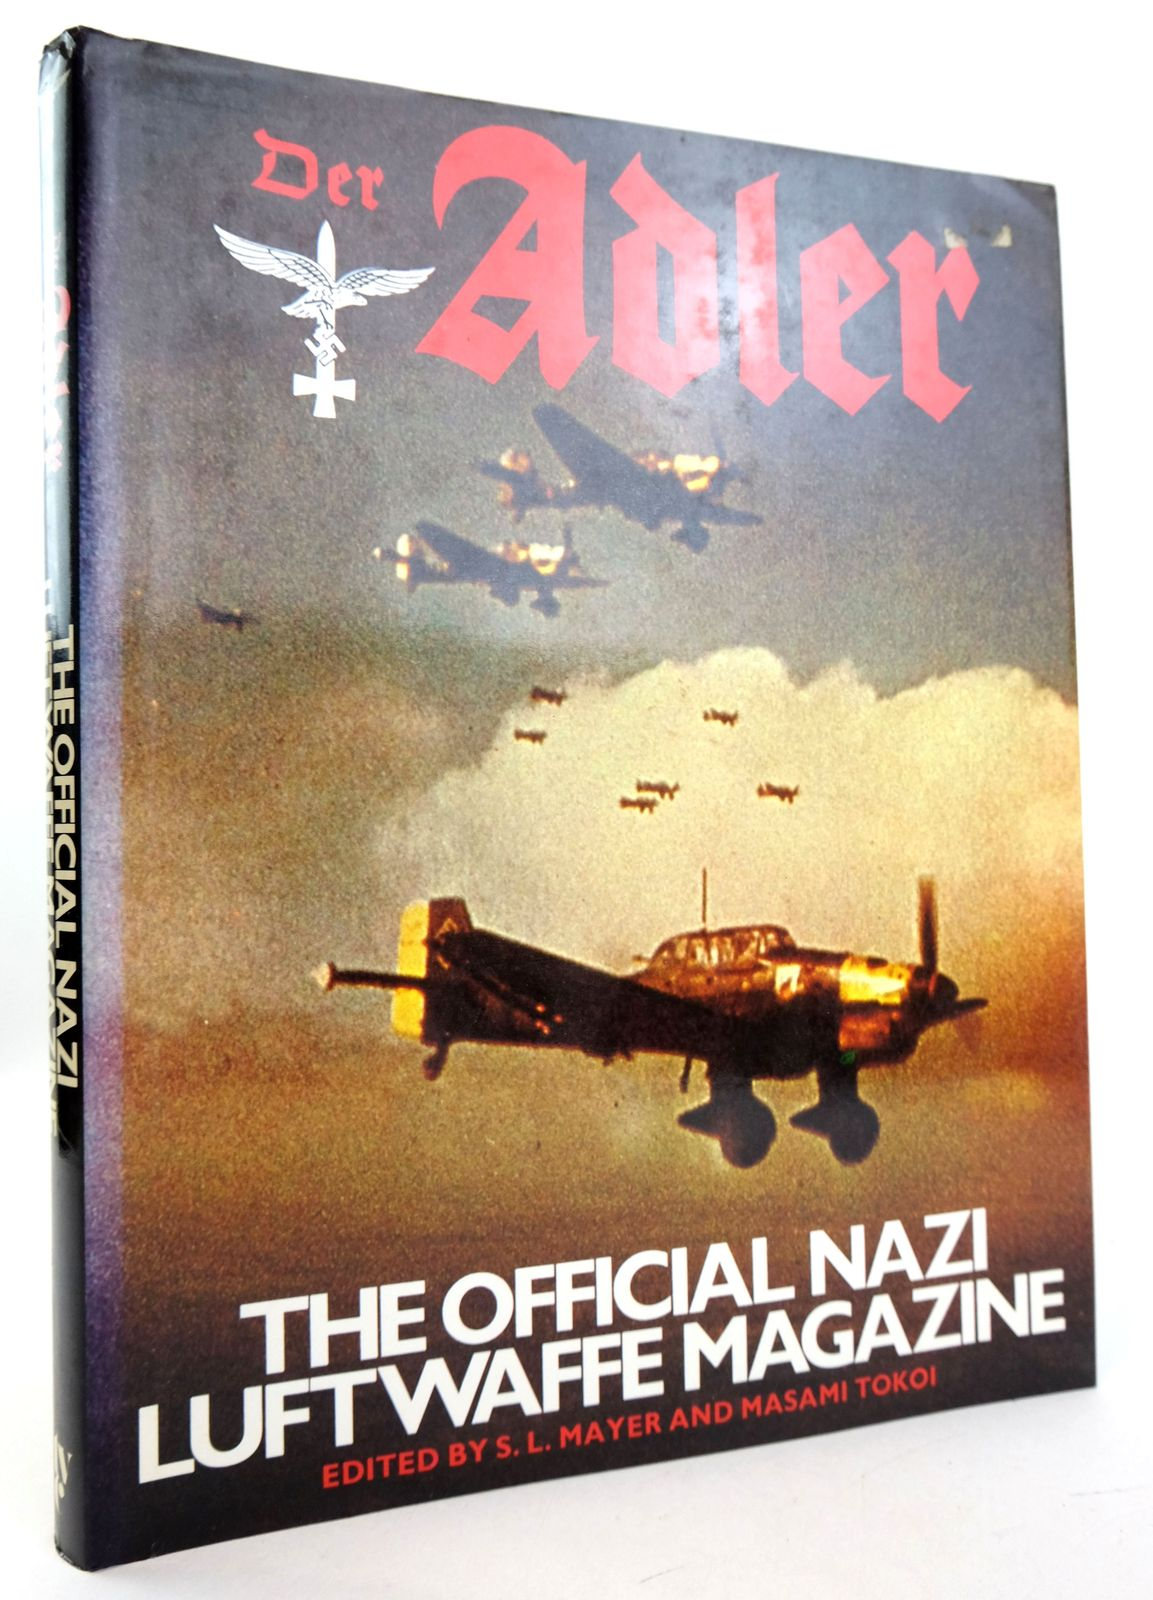 Photo of DER ADLER: THE OFFICIAL NAZI LUFTWAFFE MAGAZINE written by Mayer, S.L. Tokoi, Masami published by Thomas Y. Crowell (STOCK CODE: 1819430)  for sale by Stella & Rose's Books